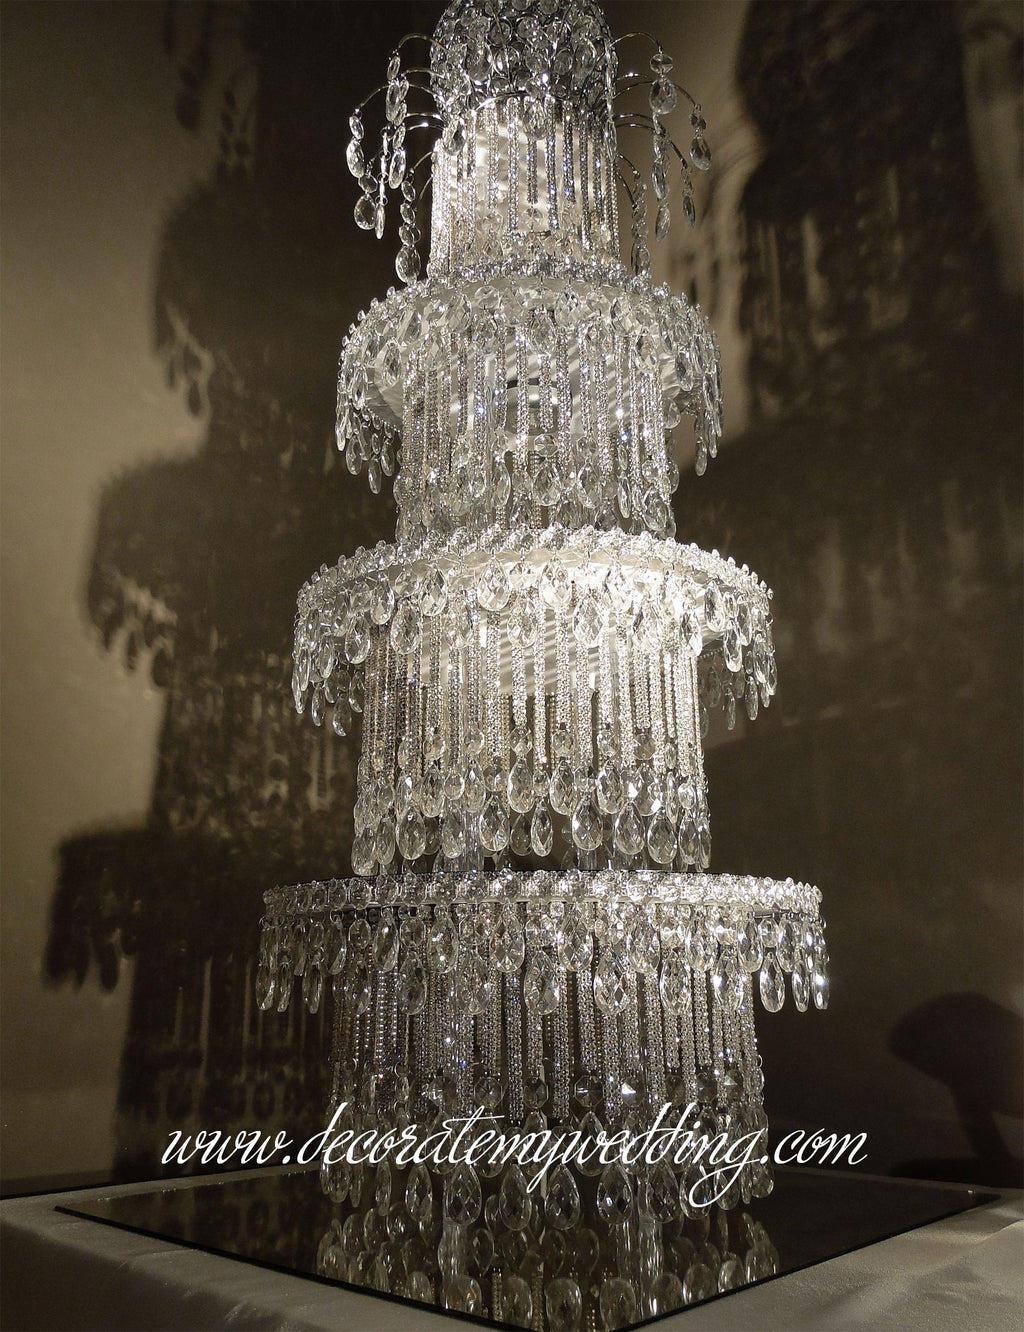 The multiple tiers of stacking crystals creates this sensational and unique wedding centerpiece.